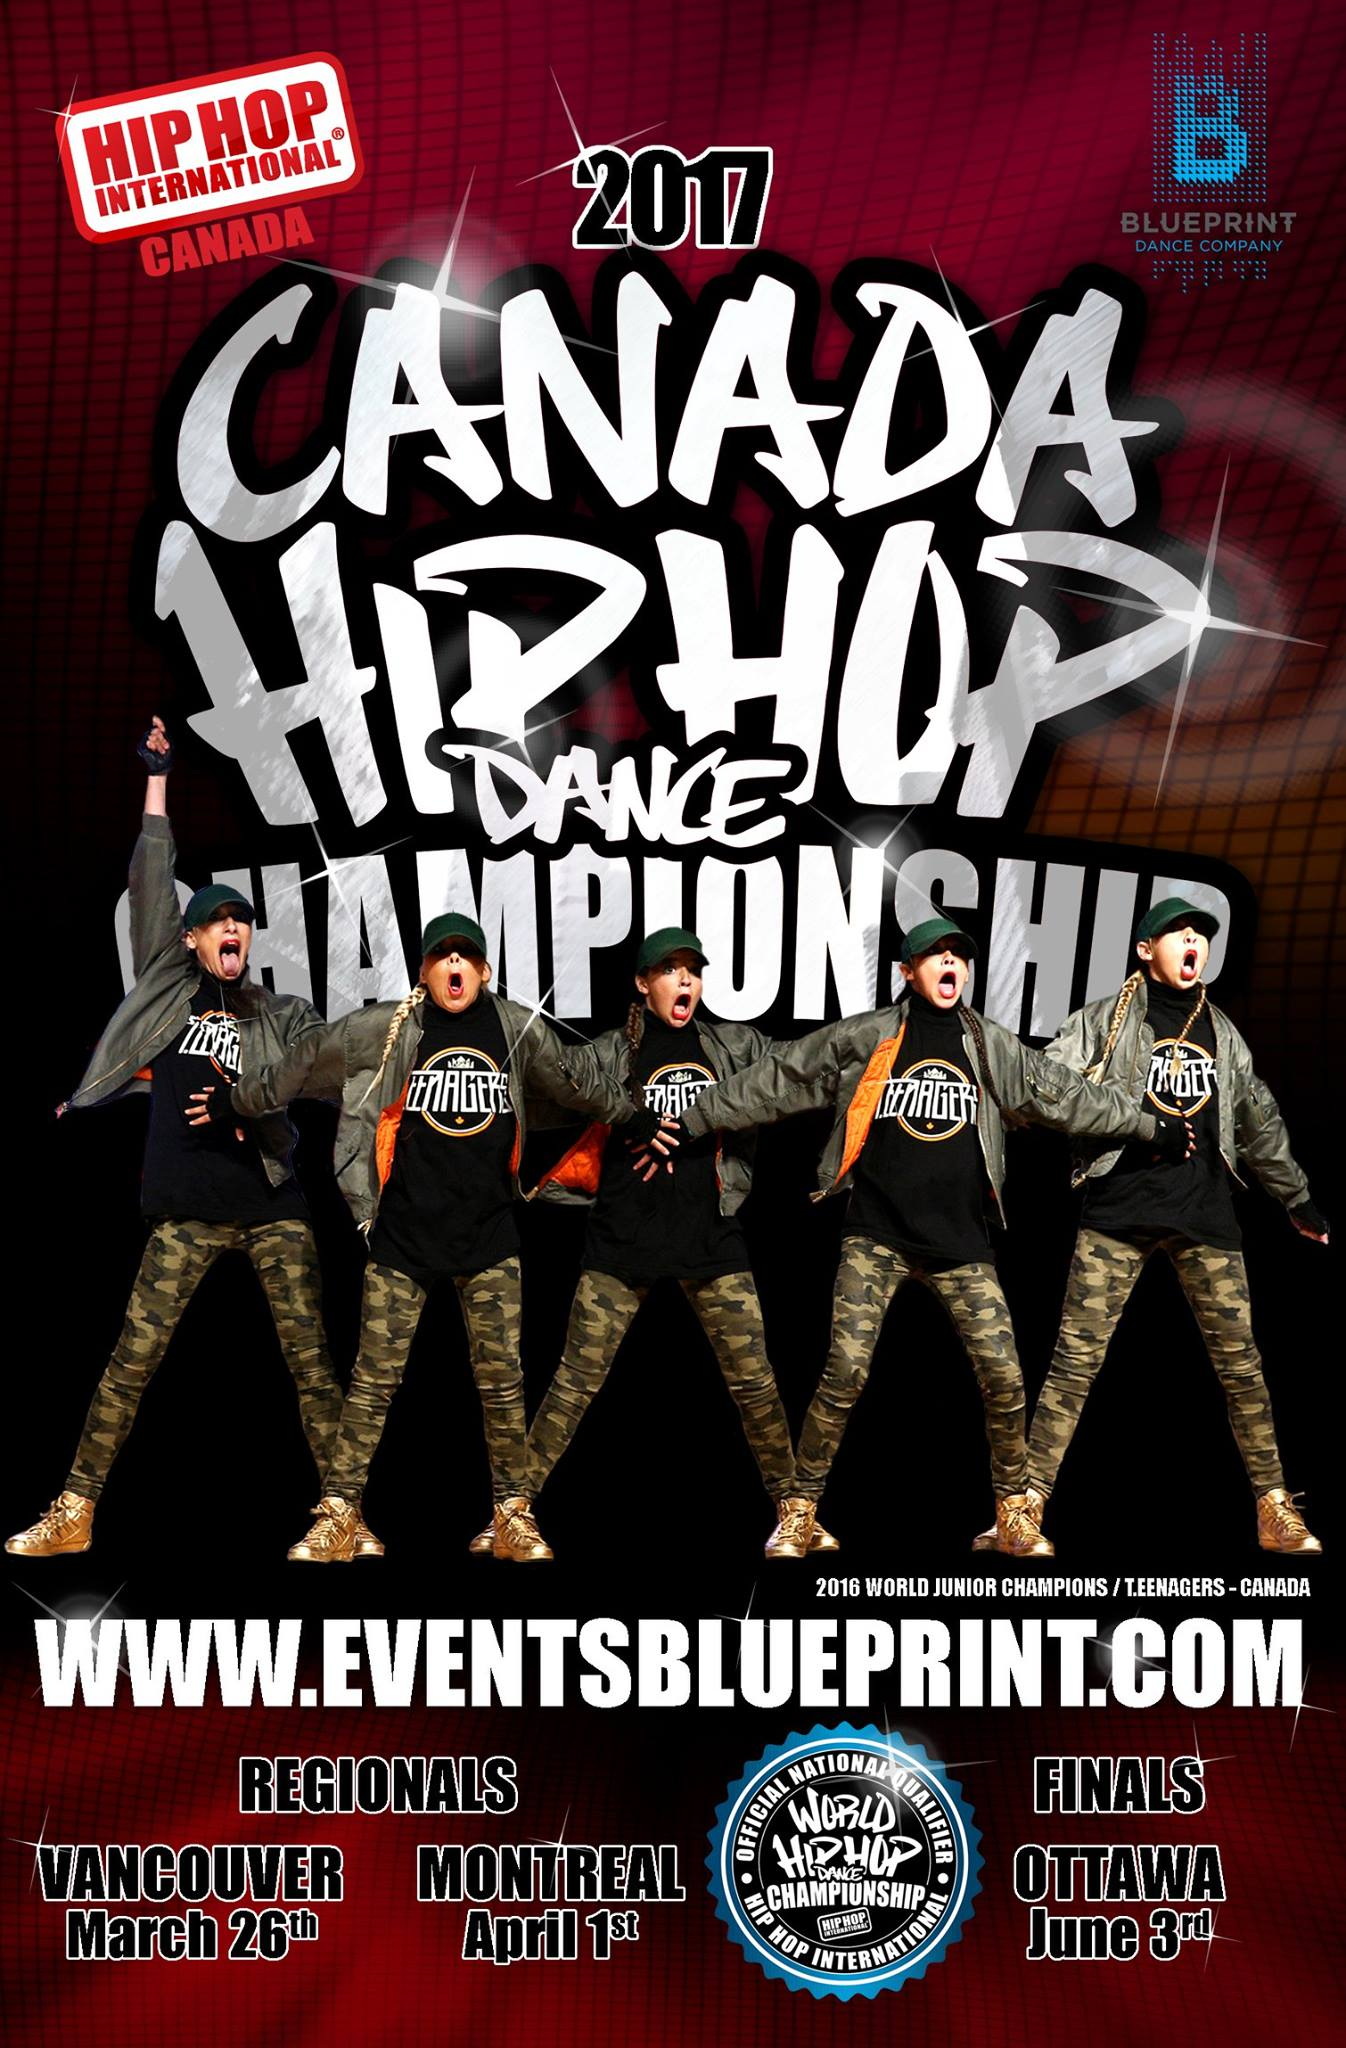 Hiphop international on twitter hip hop international canada 2017 hiphop international on twitter hip hop international canada 2017 regional qualifiers and national finals hhicanada hhi2017 goforgold2017 malvernweather Choice Image